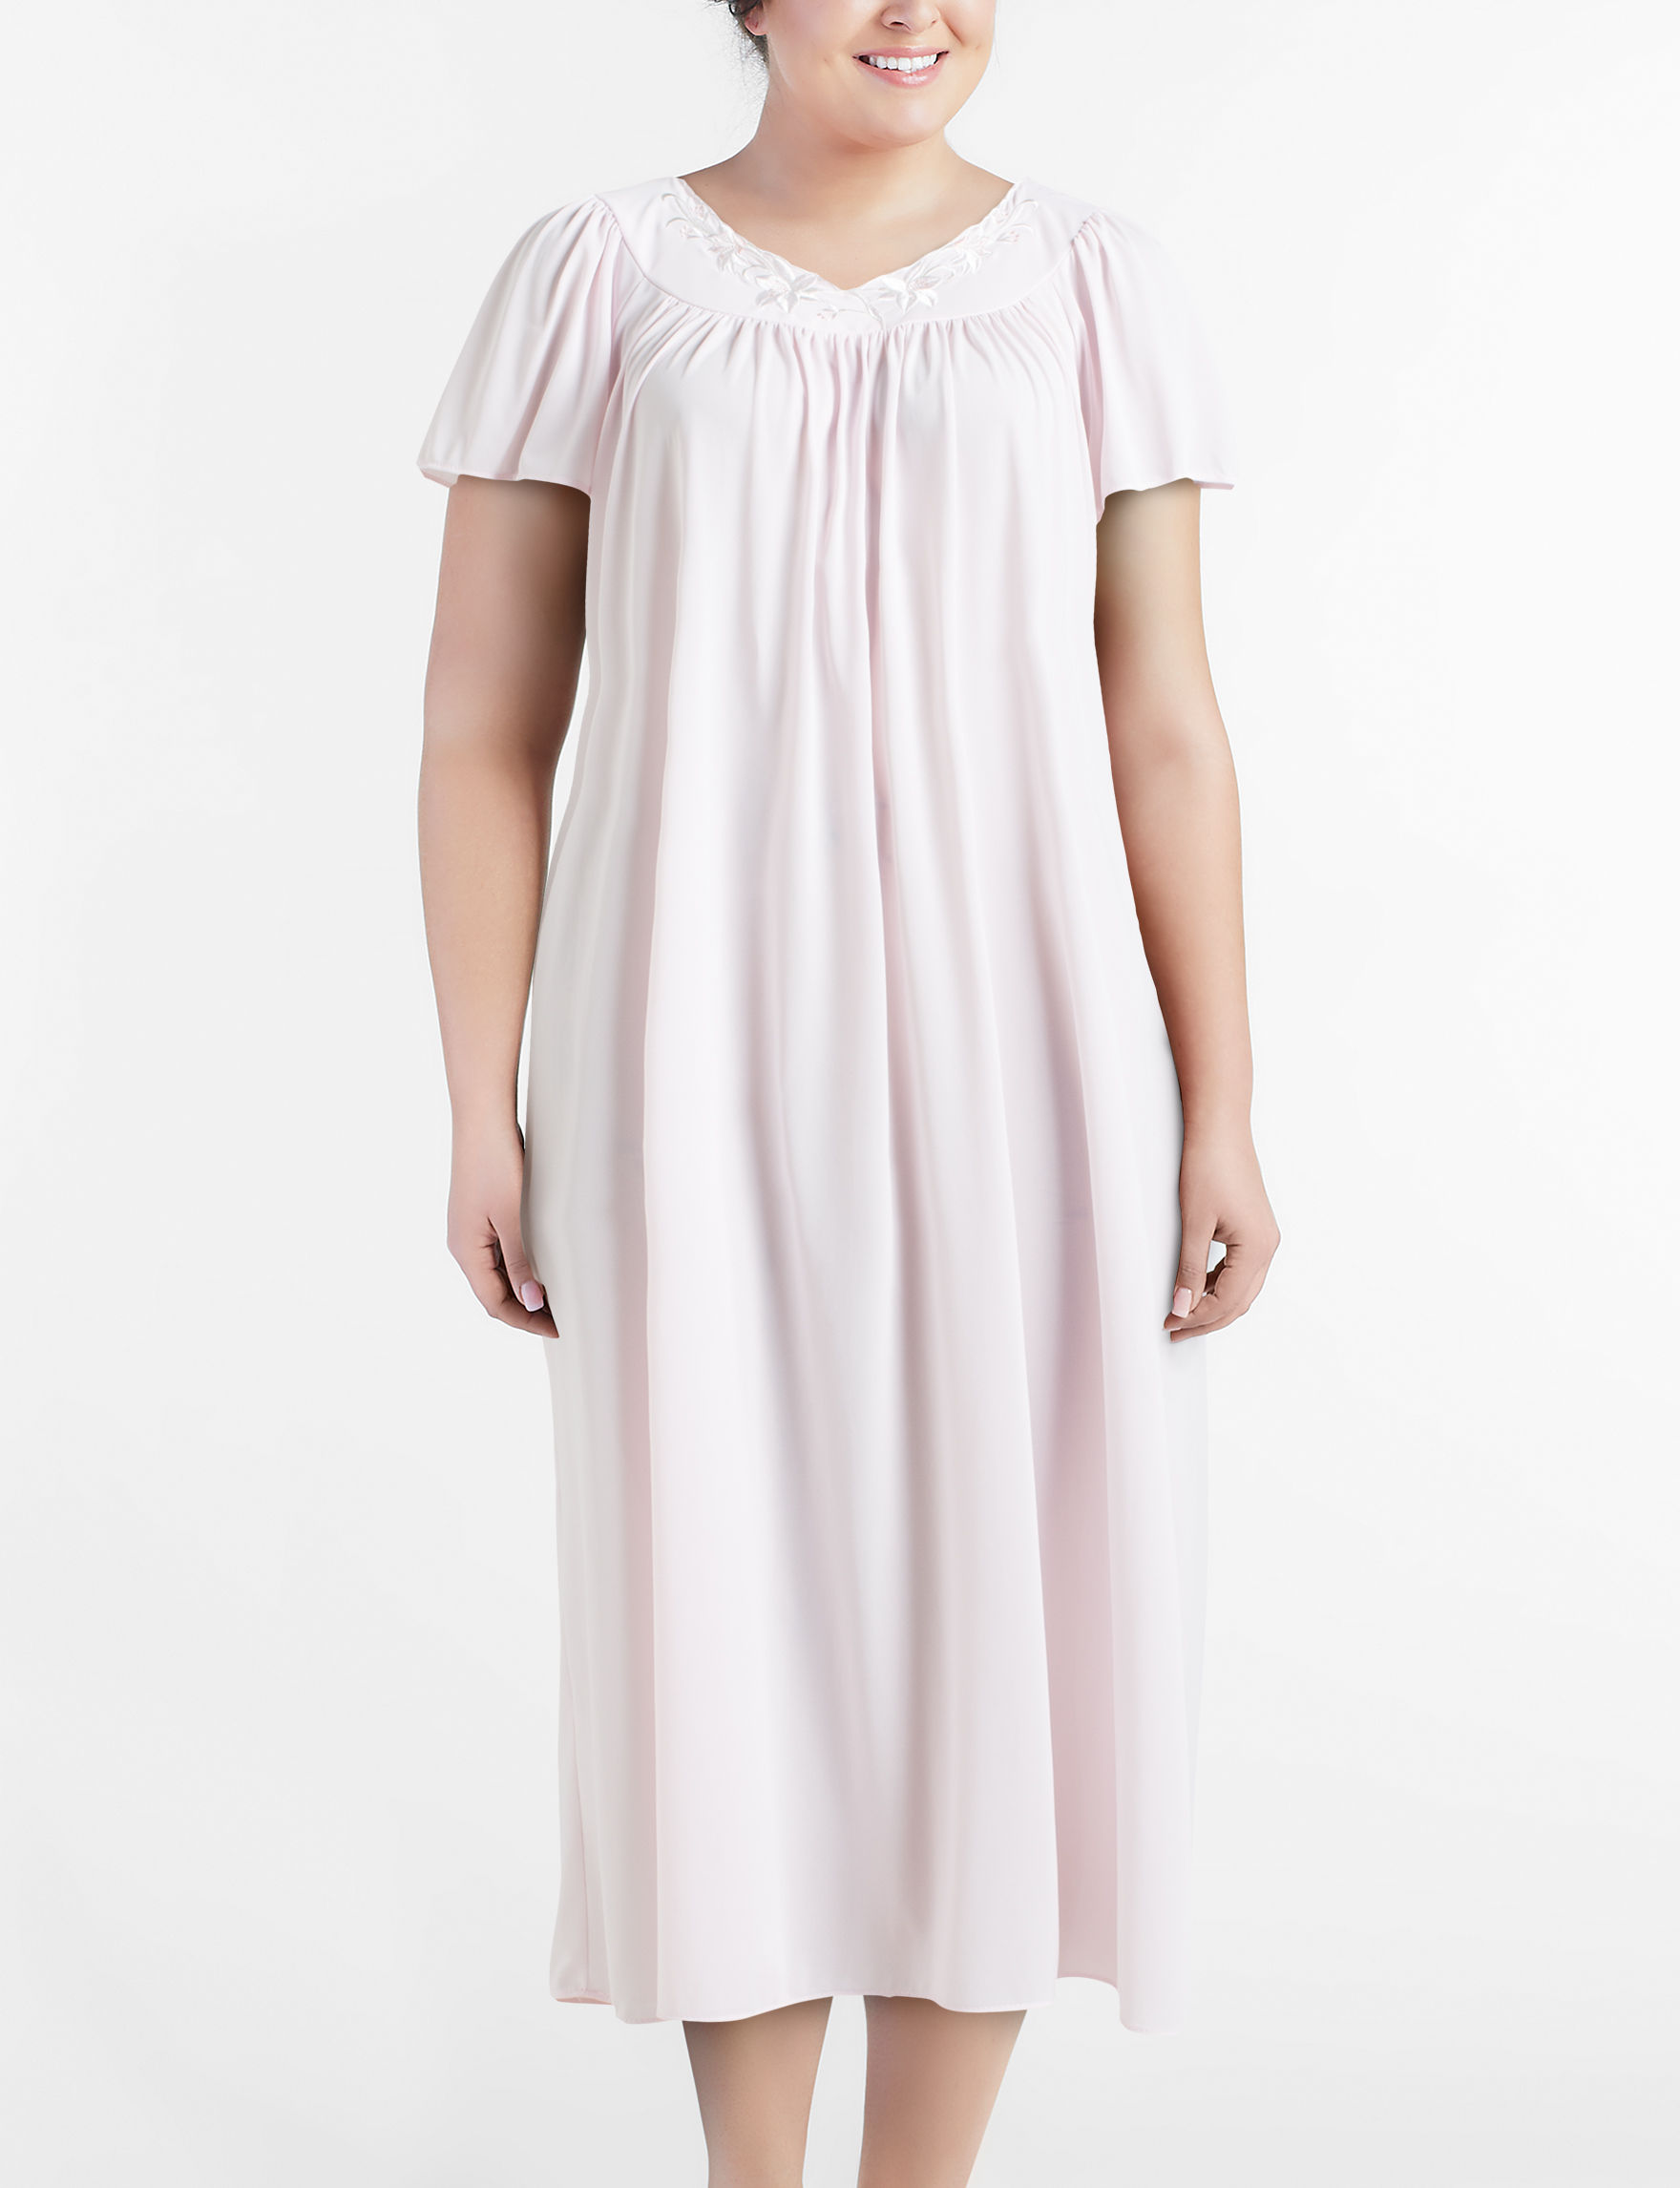 Miss Elaine Plus-size Tricot Sleep Gown   Stage Stores